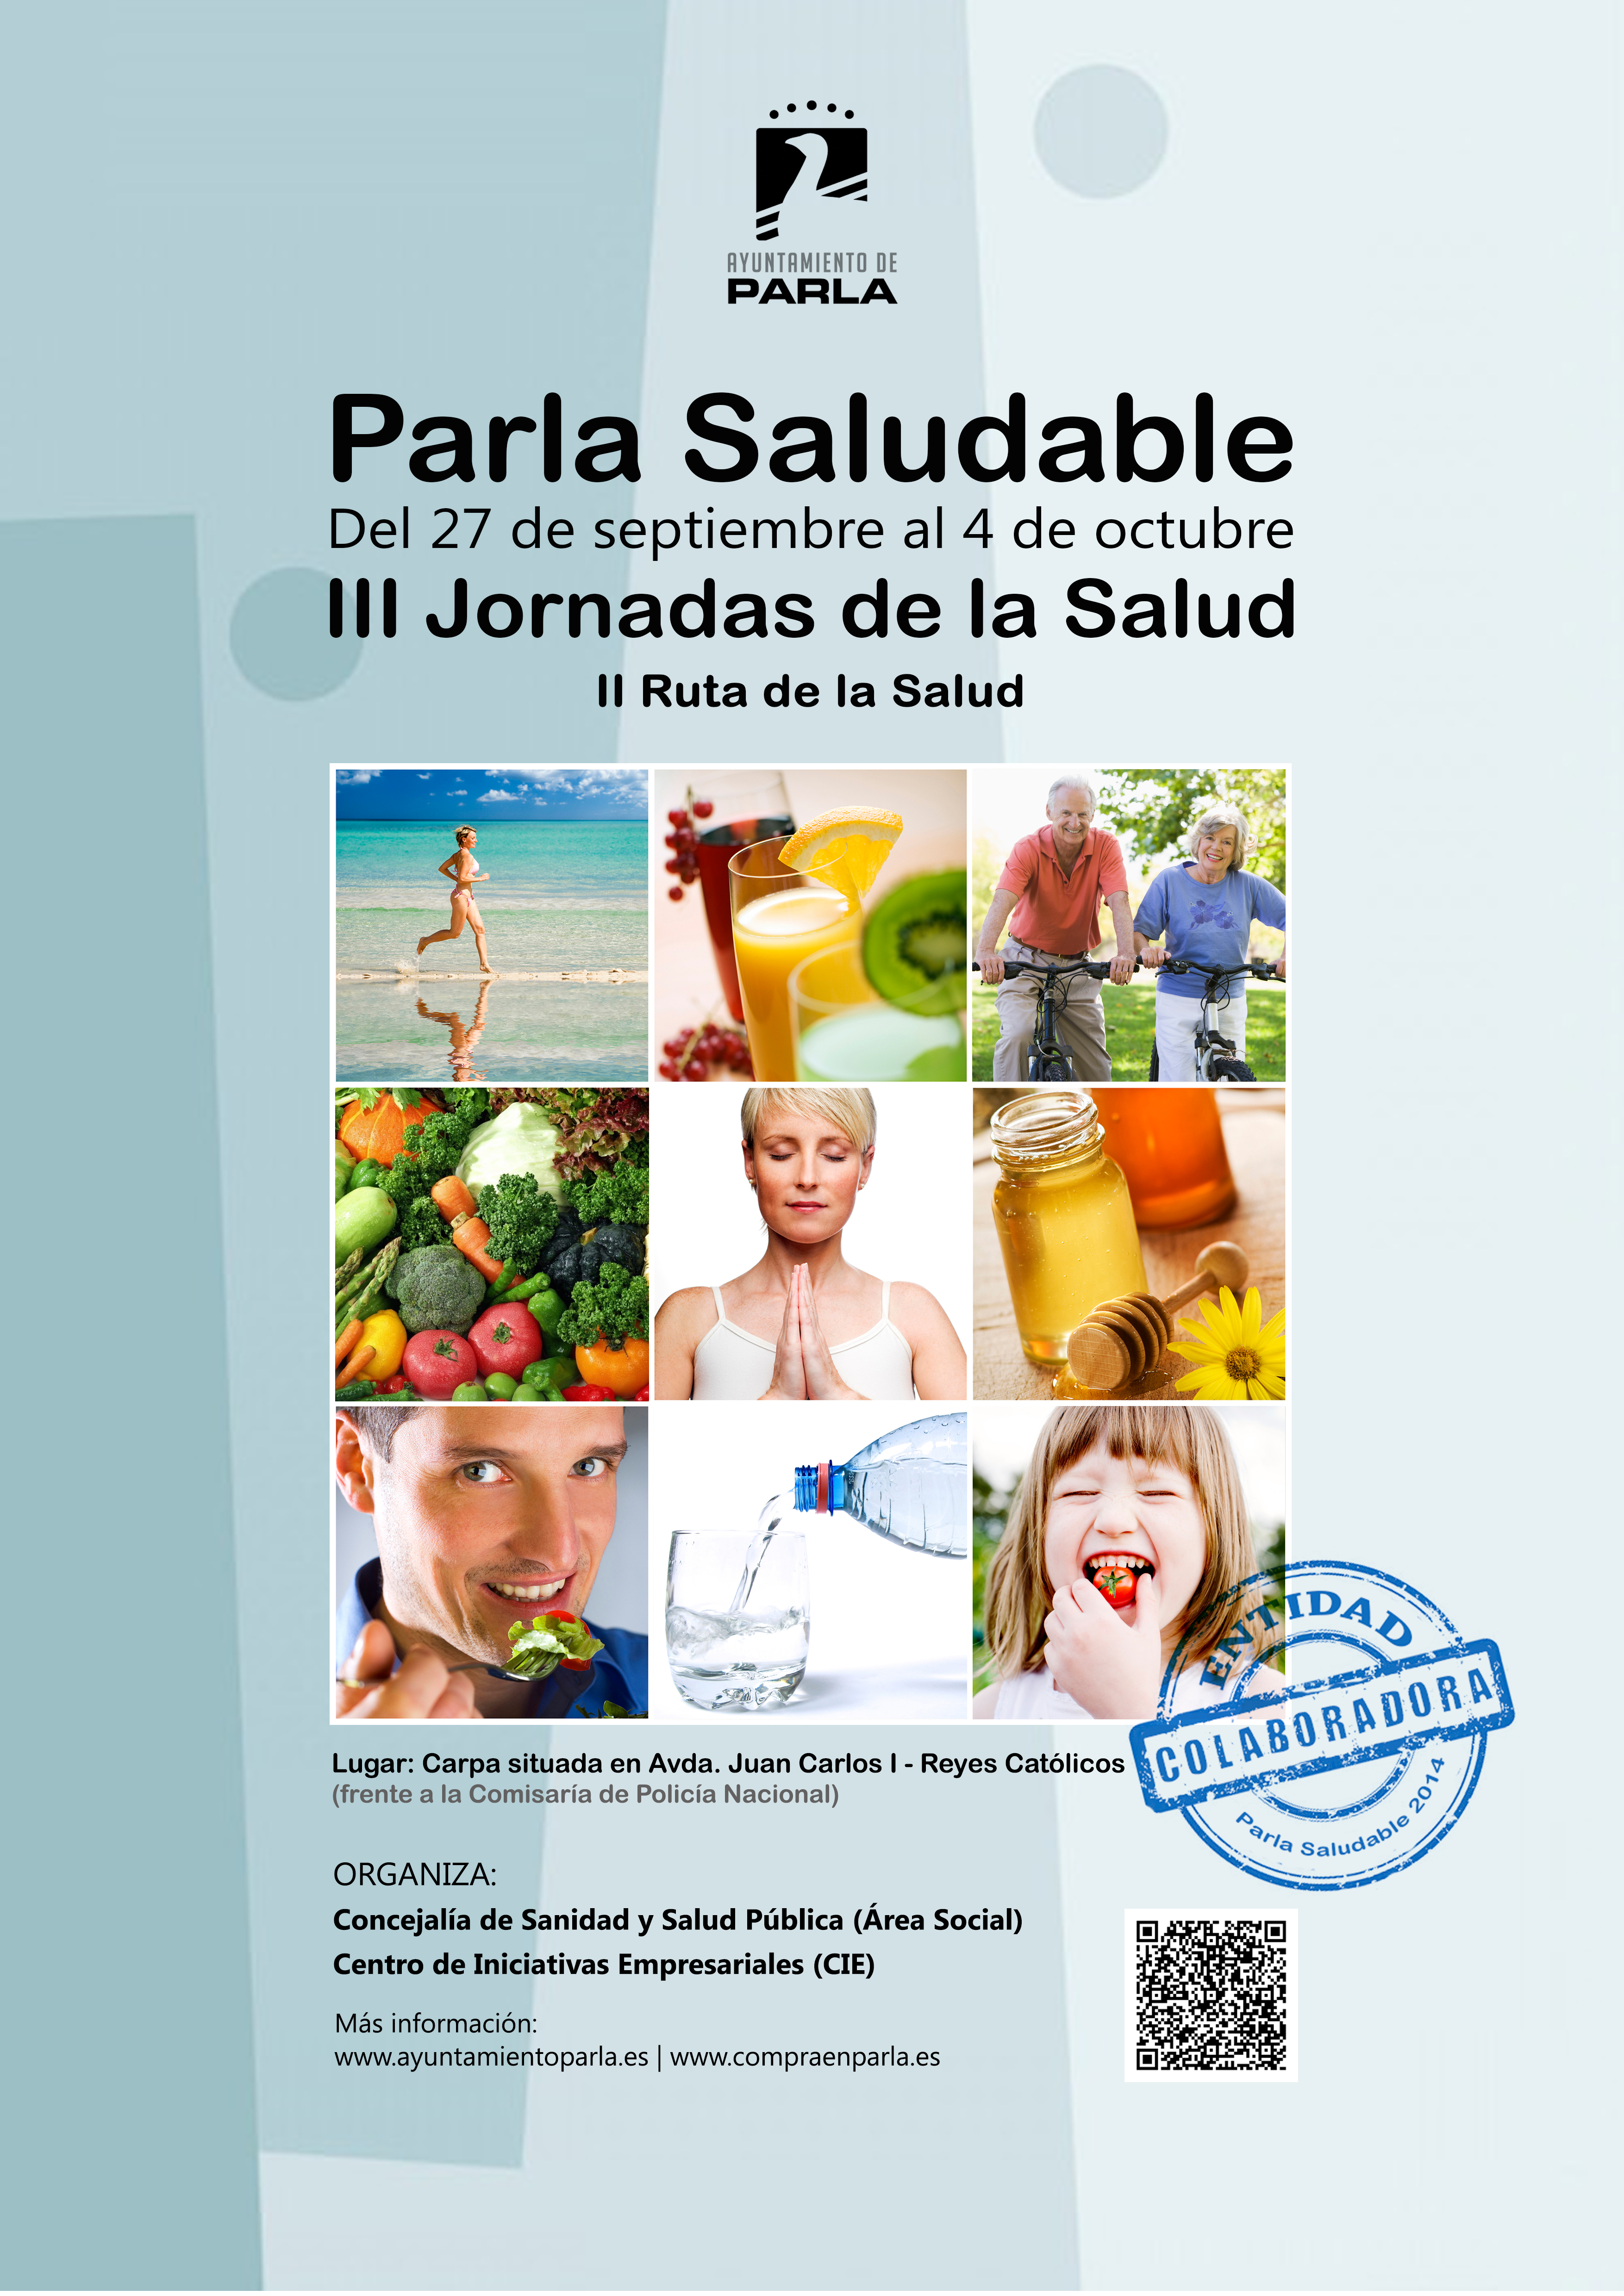 Parla-Saludable